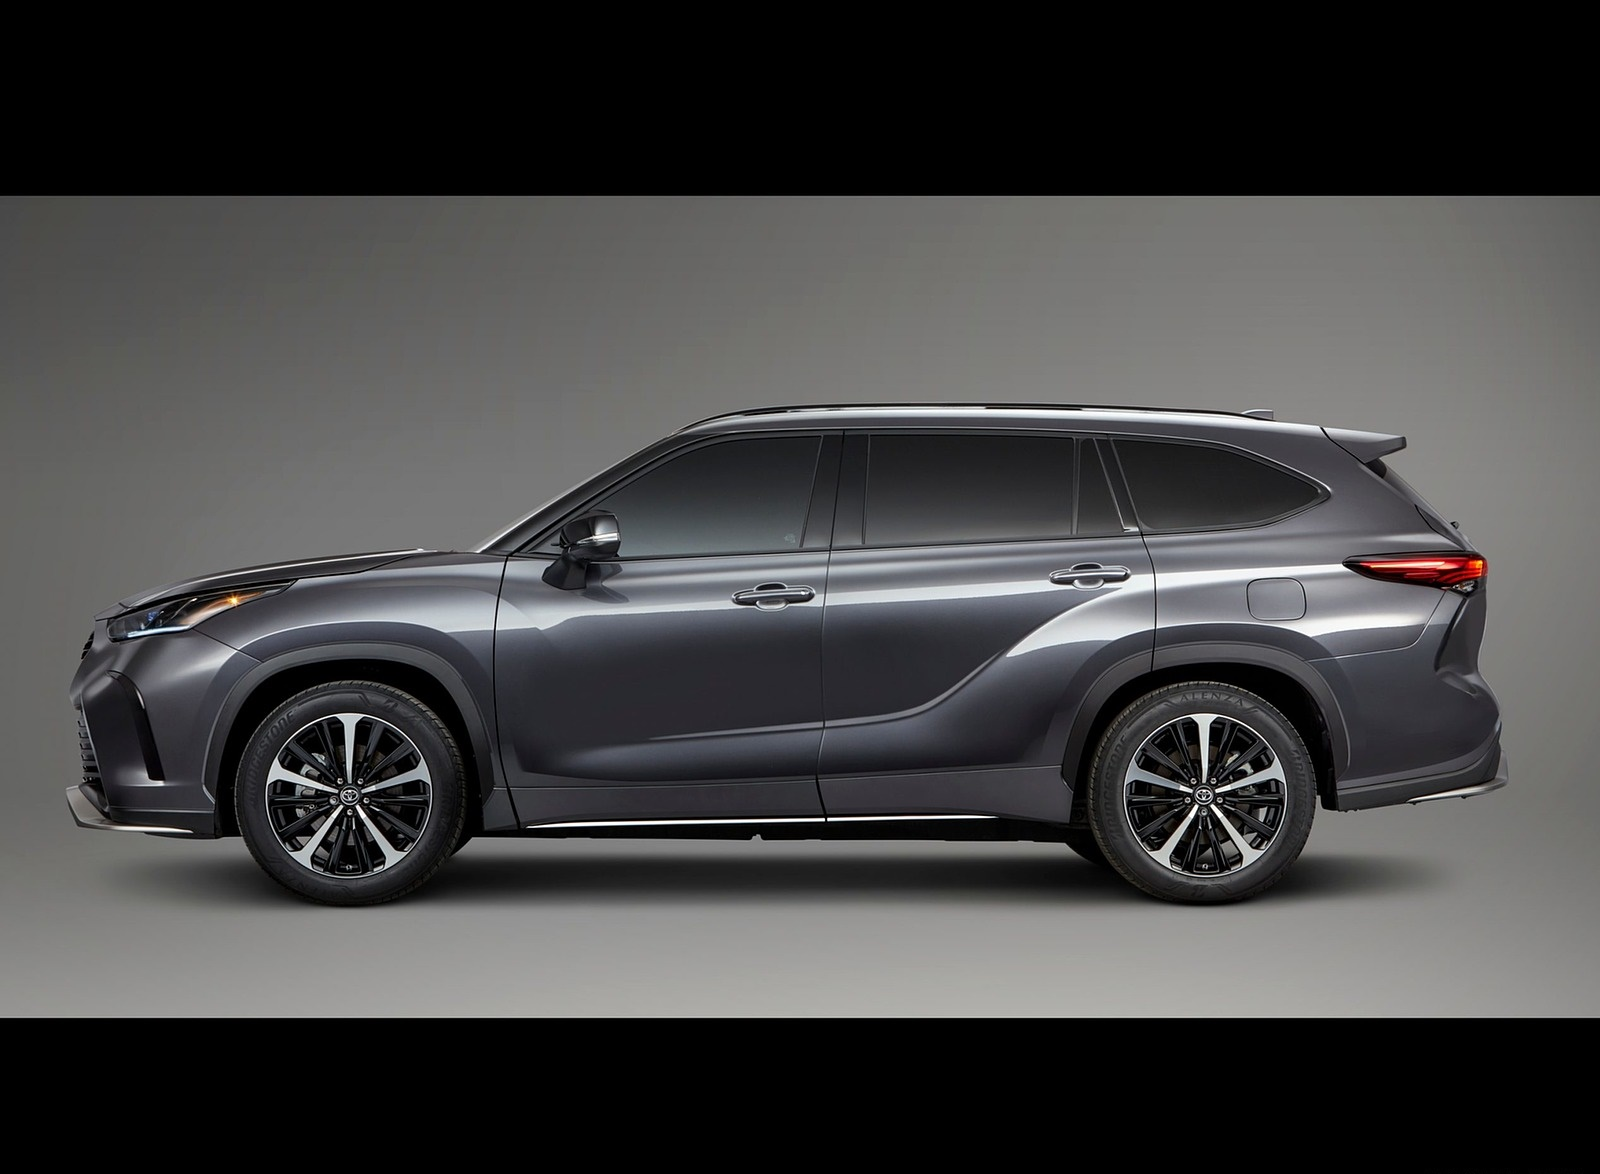 2021 Toyota Highlander XSE AWD Side Wallpapers (4)